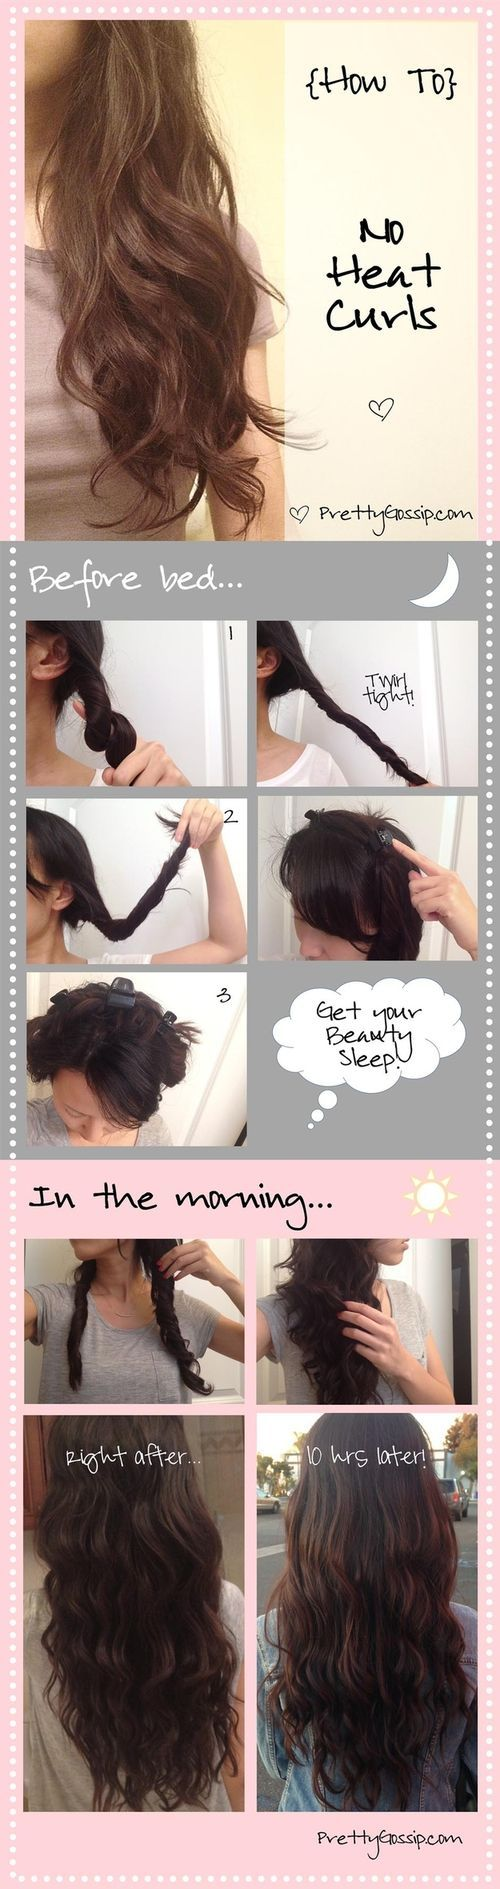 Actually tried this last night....PERFECT! Best hair idea yet I've pinned!